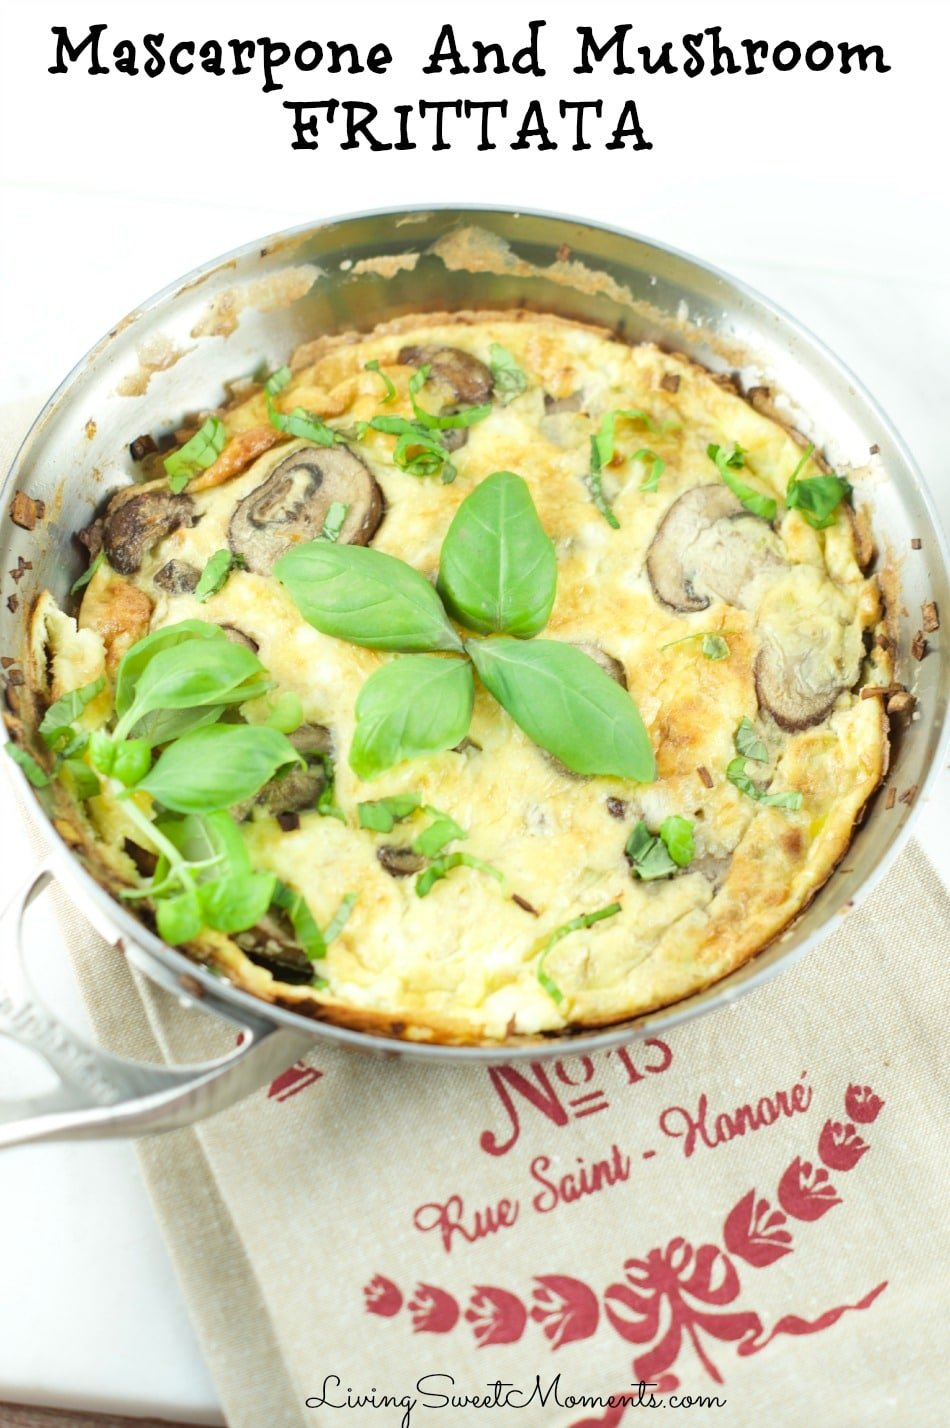 mascarpone-and-mushroom-frittata-recipe-cover